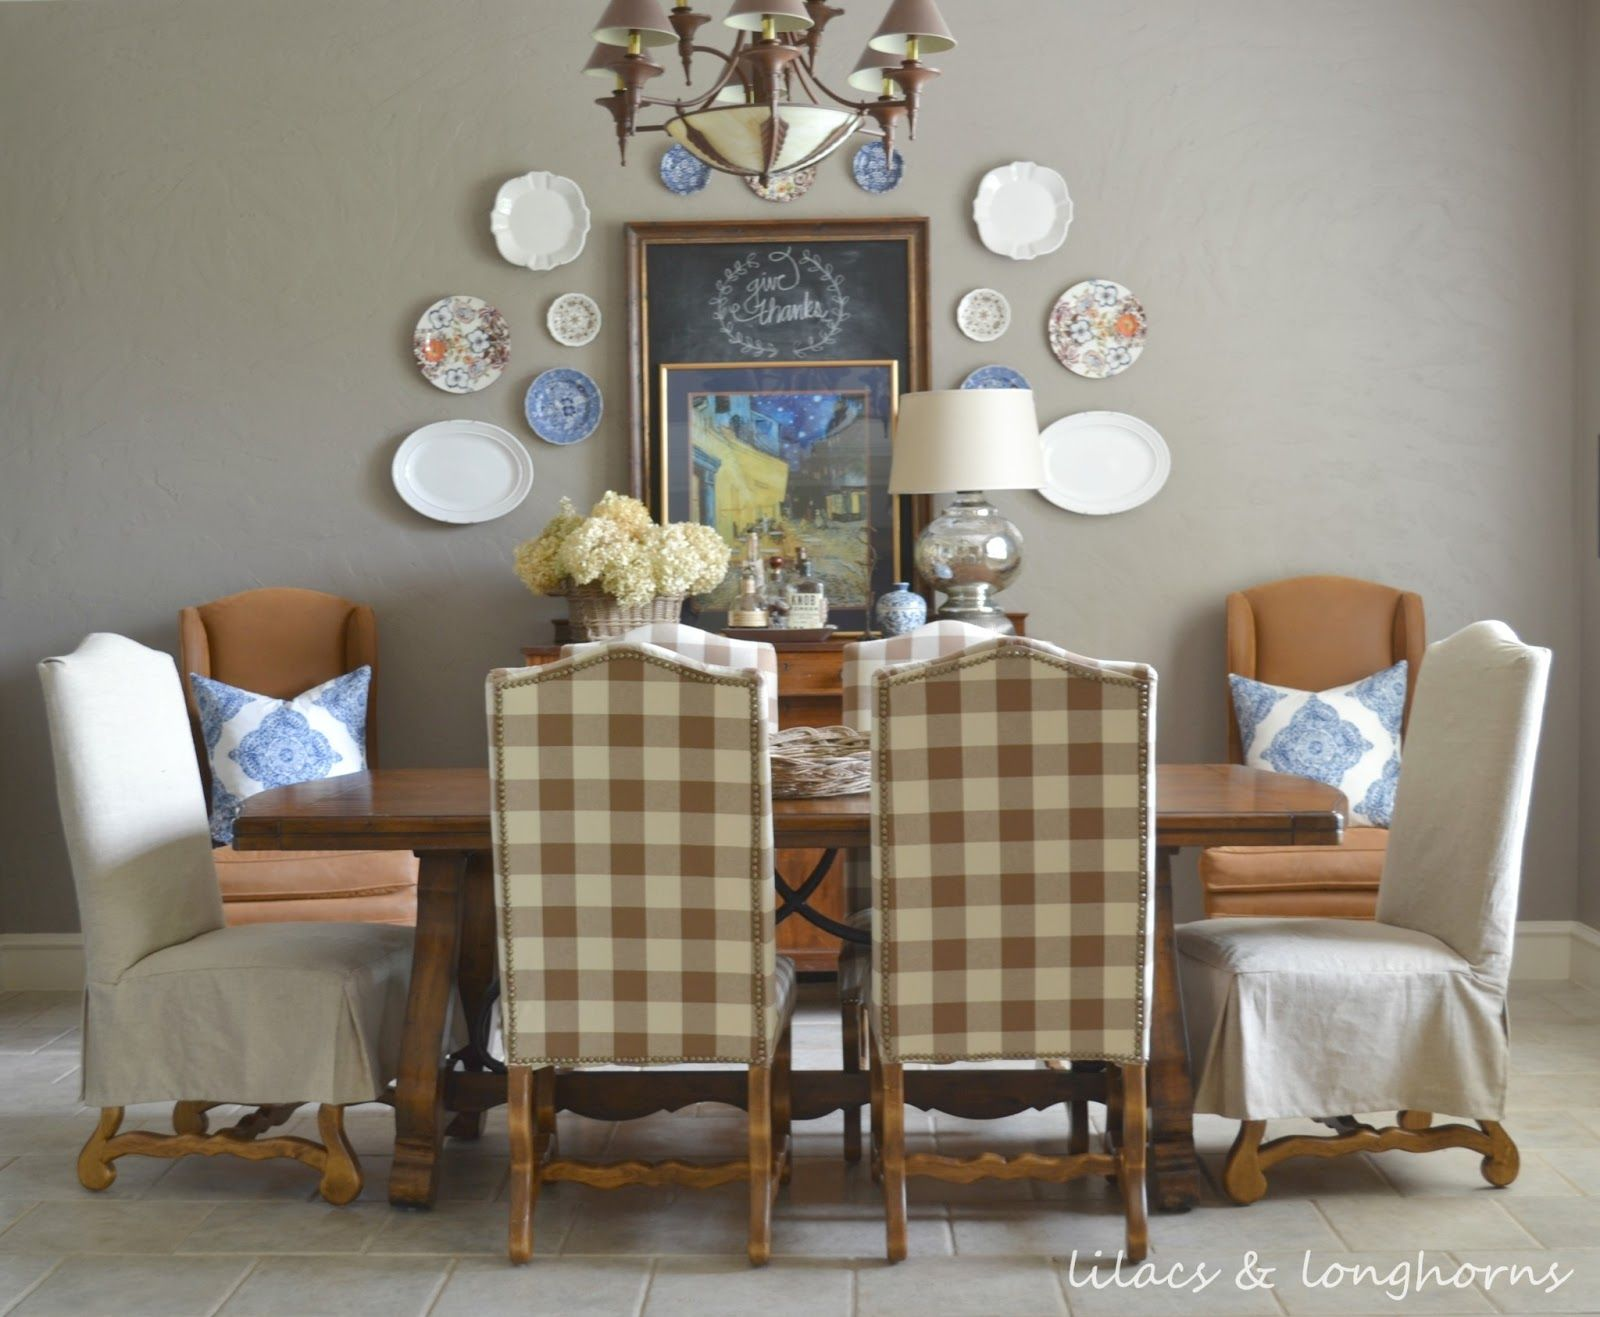 How To Upholster A Dining Room Chair Amusing Buffalo Checked Chairs And A Plate Wall In The Dining Room Design Ideas